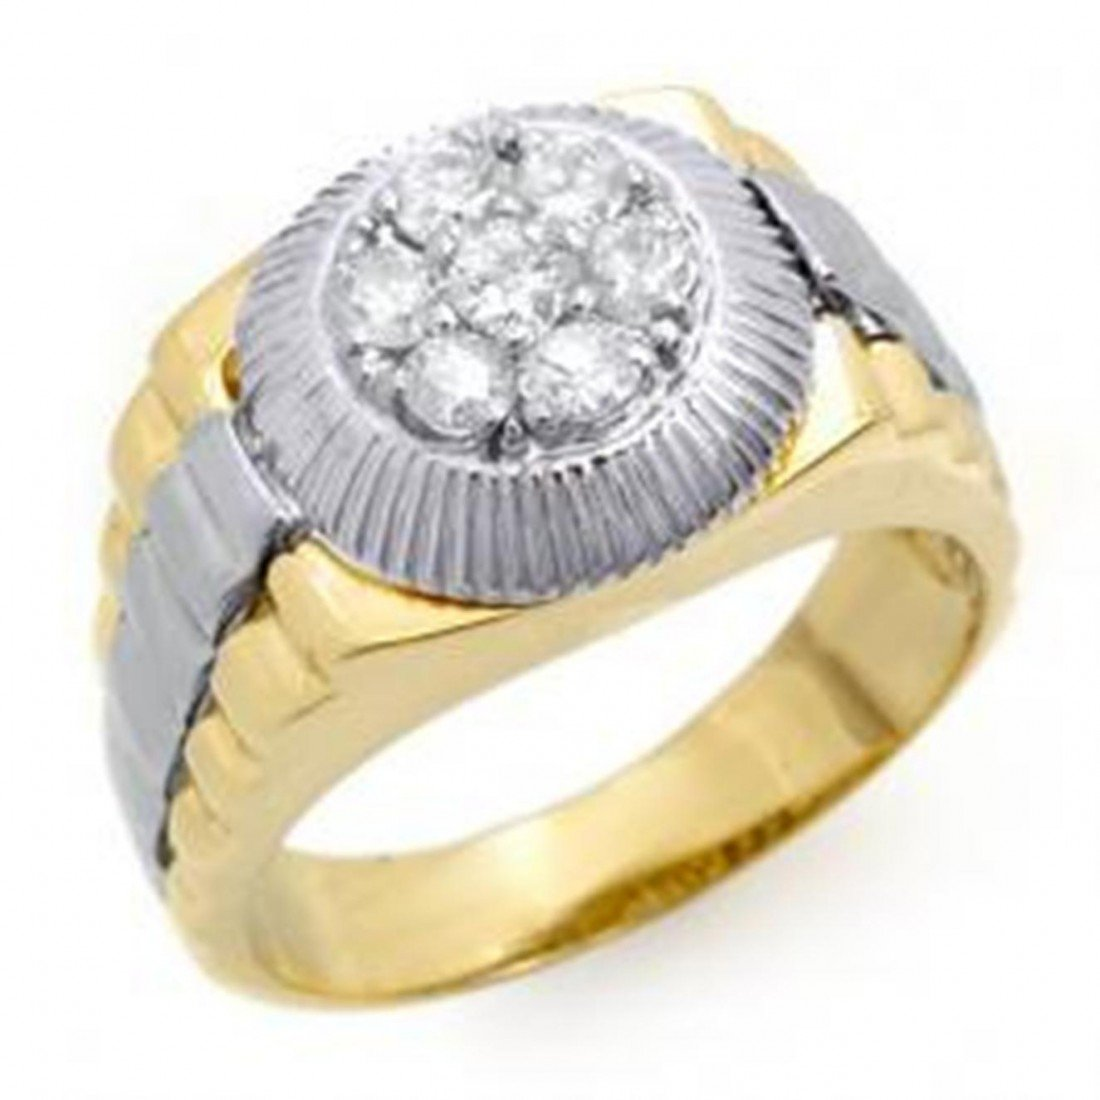 1F: Rolex Style Man's Ring